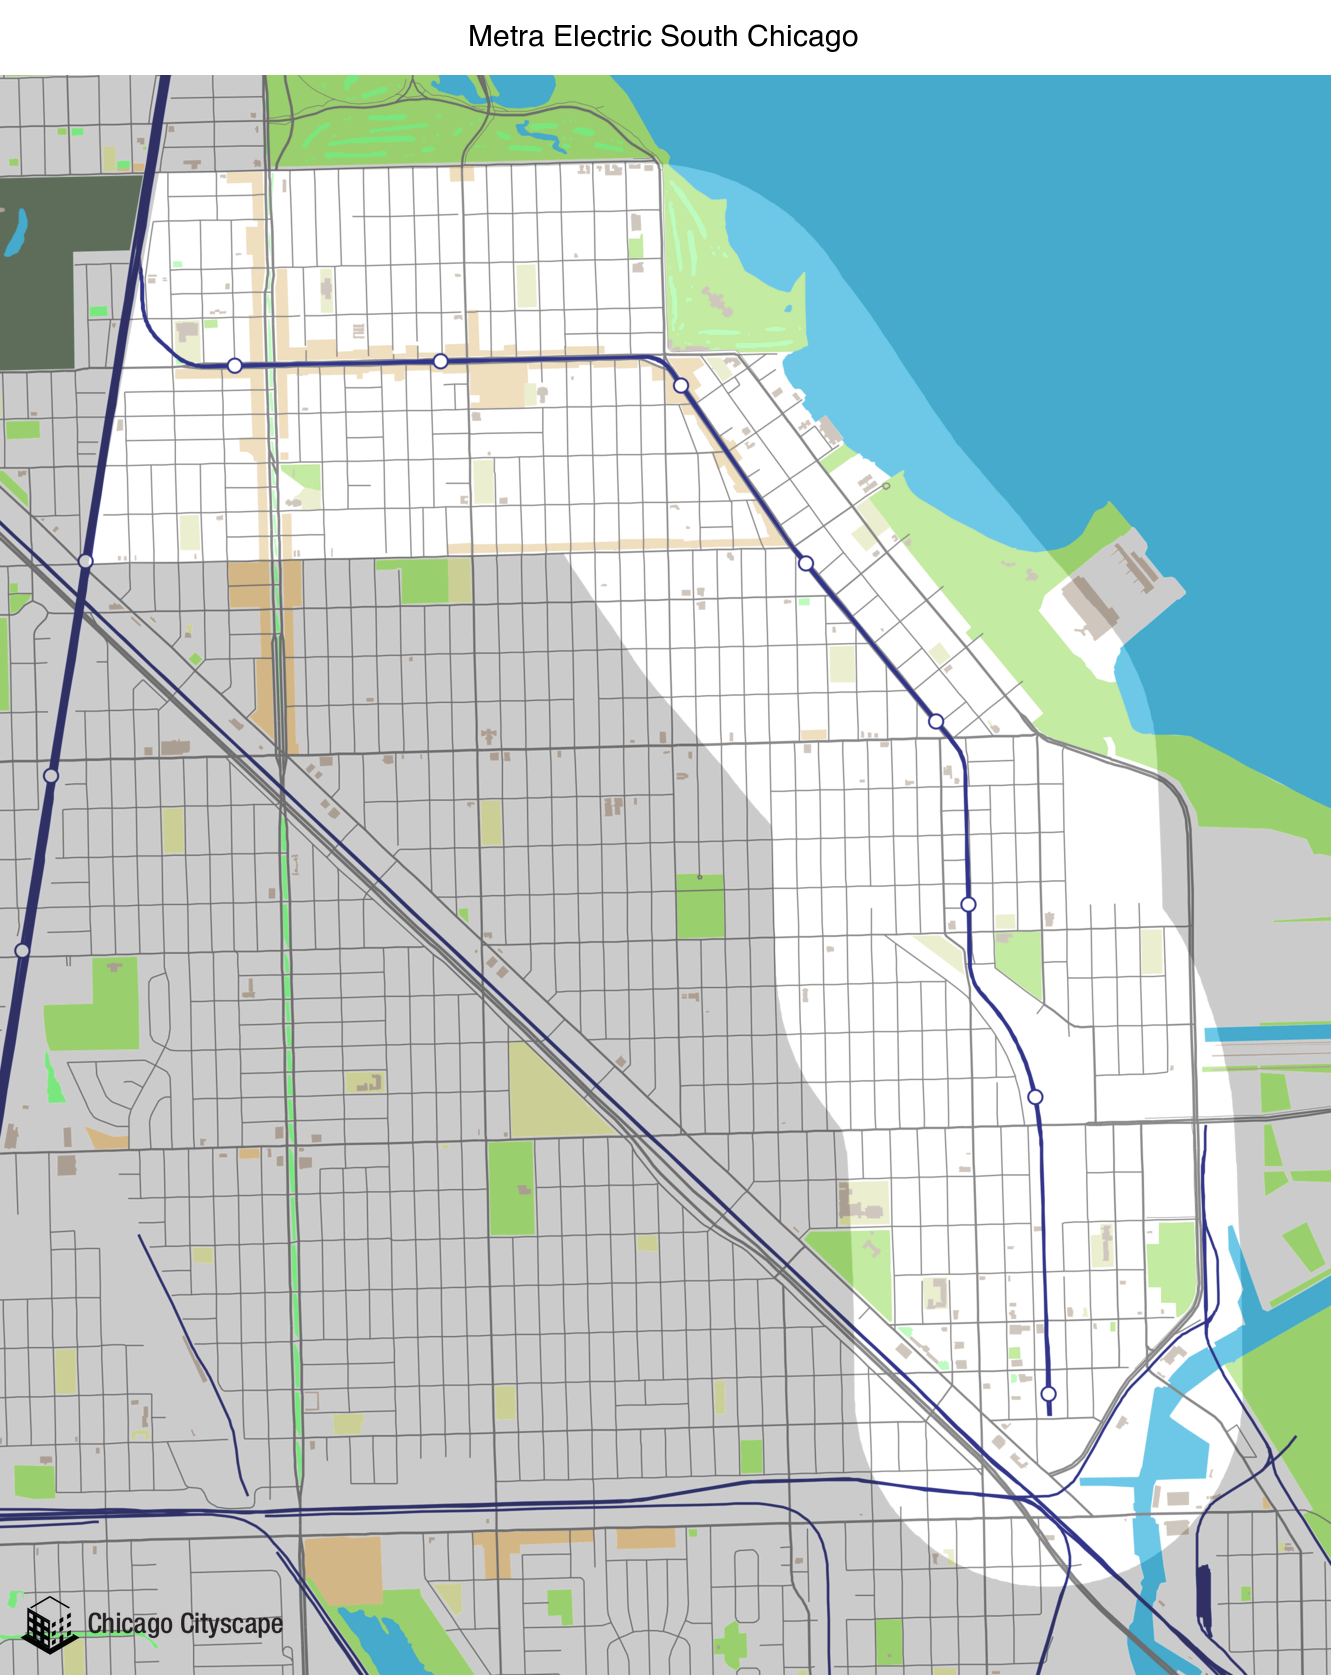 Map of building projects properties and businesses in the Metra